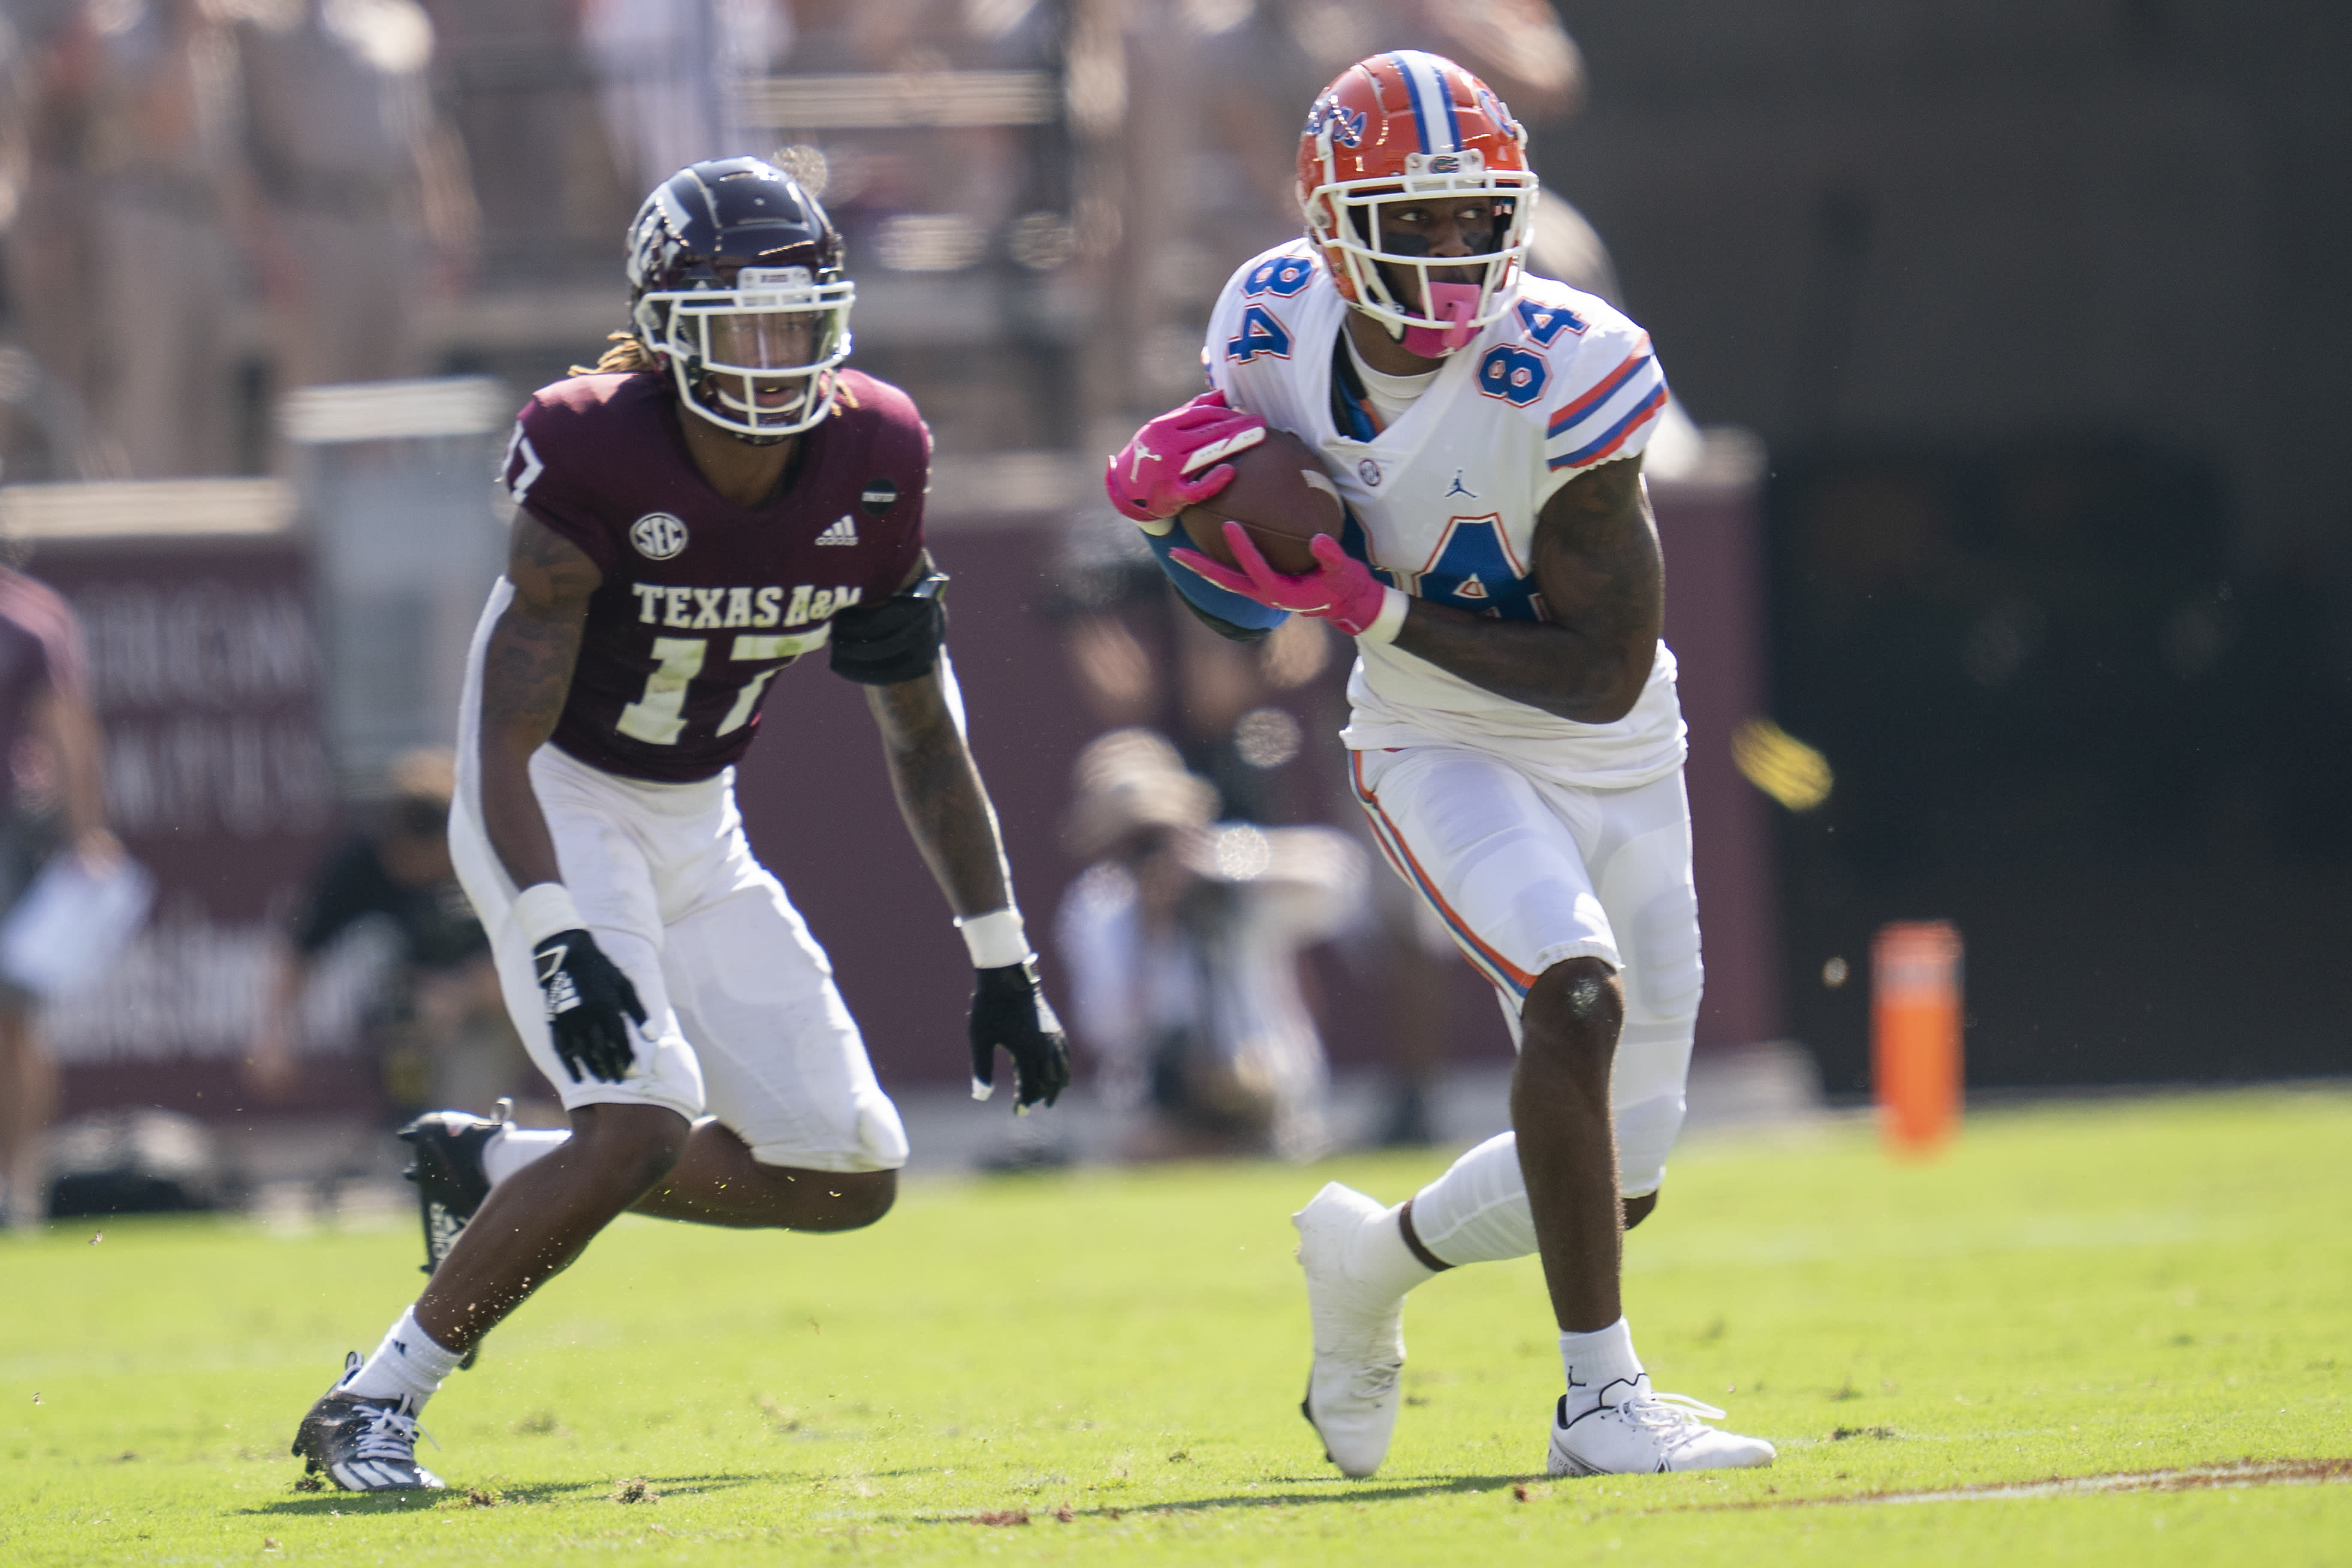 Florida tight end Kyle Pitts (84) catches a pass as Texas A&M defensive back Jaylon Jones (17) defends during the first quarter of an NCAA college football game, Saturday, Oct. 10, 2020. in College Station, Texas. (AP Photo/Sam Craft)